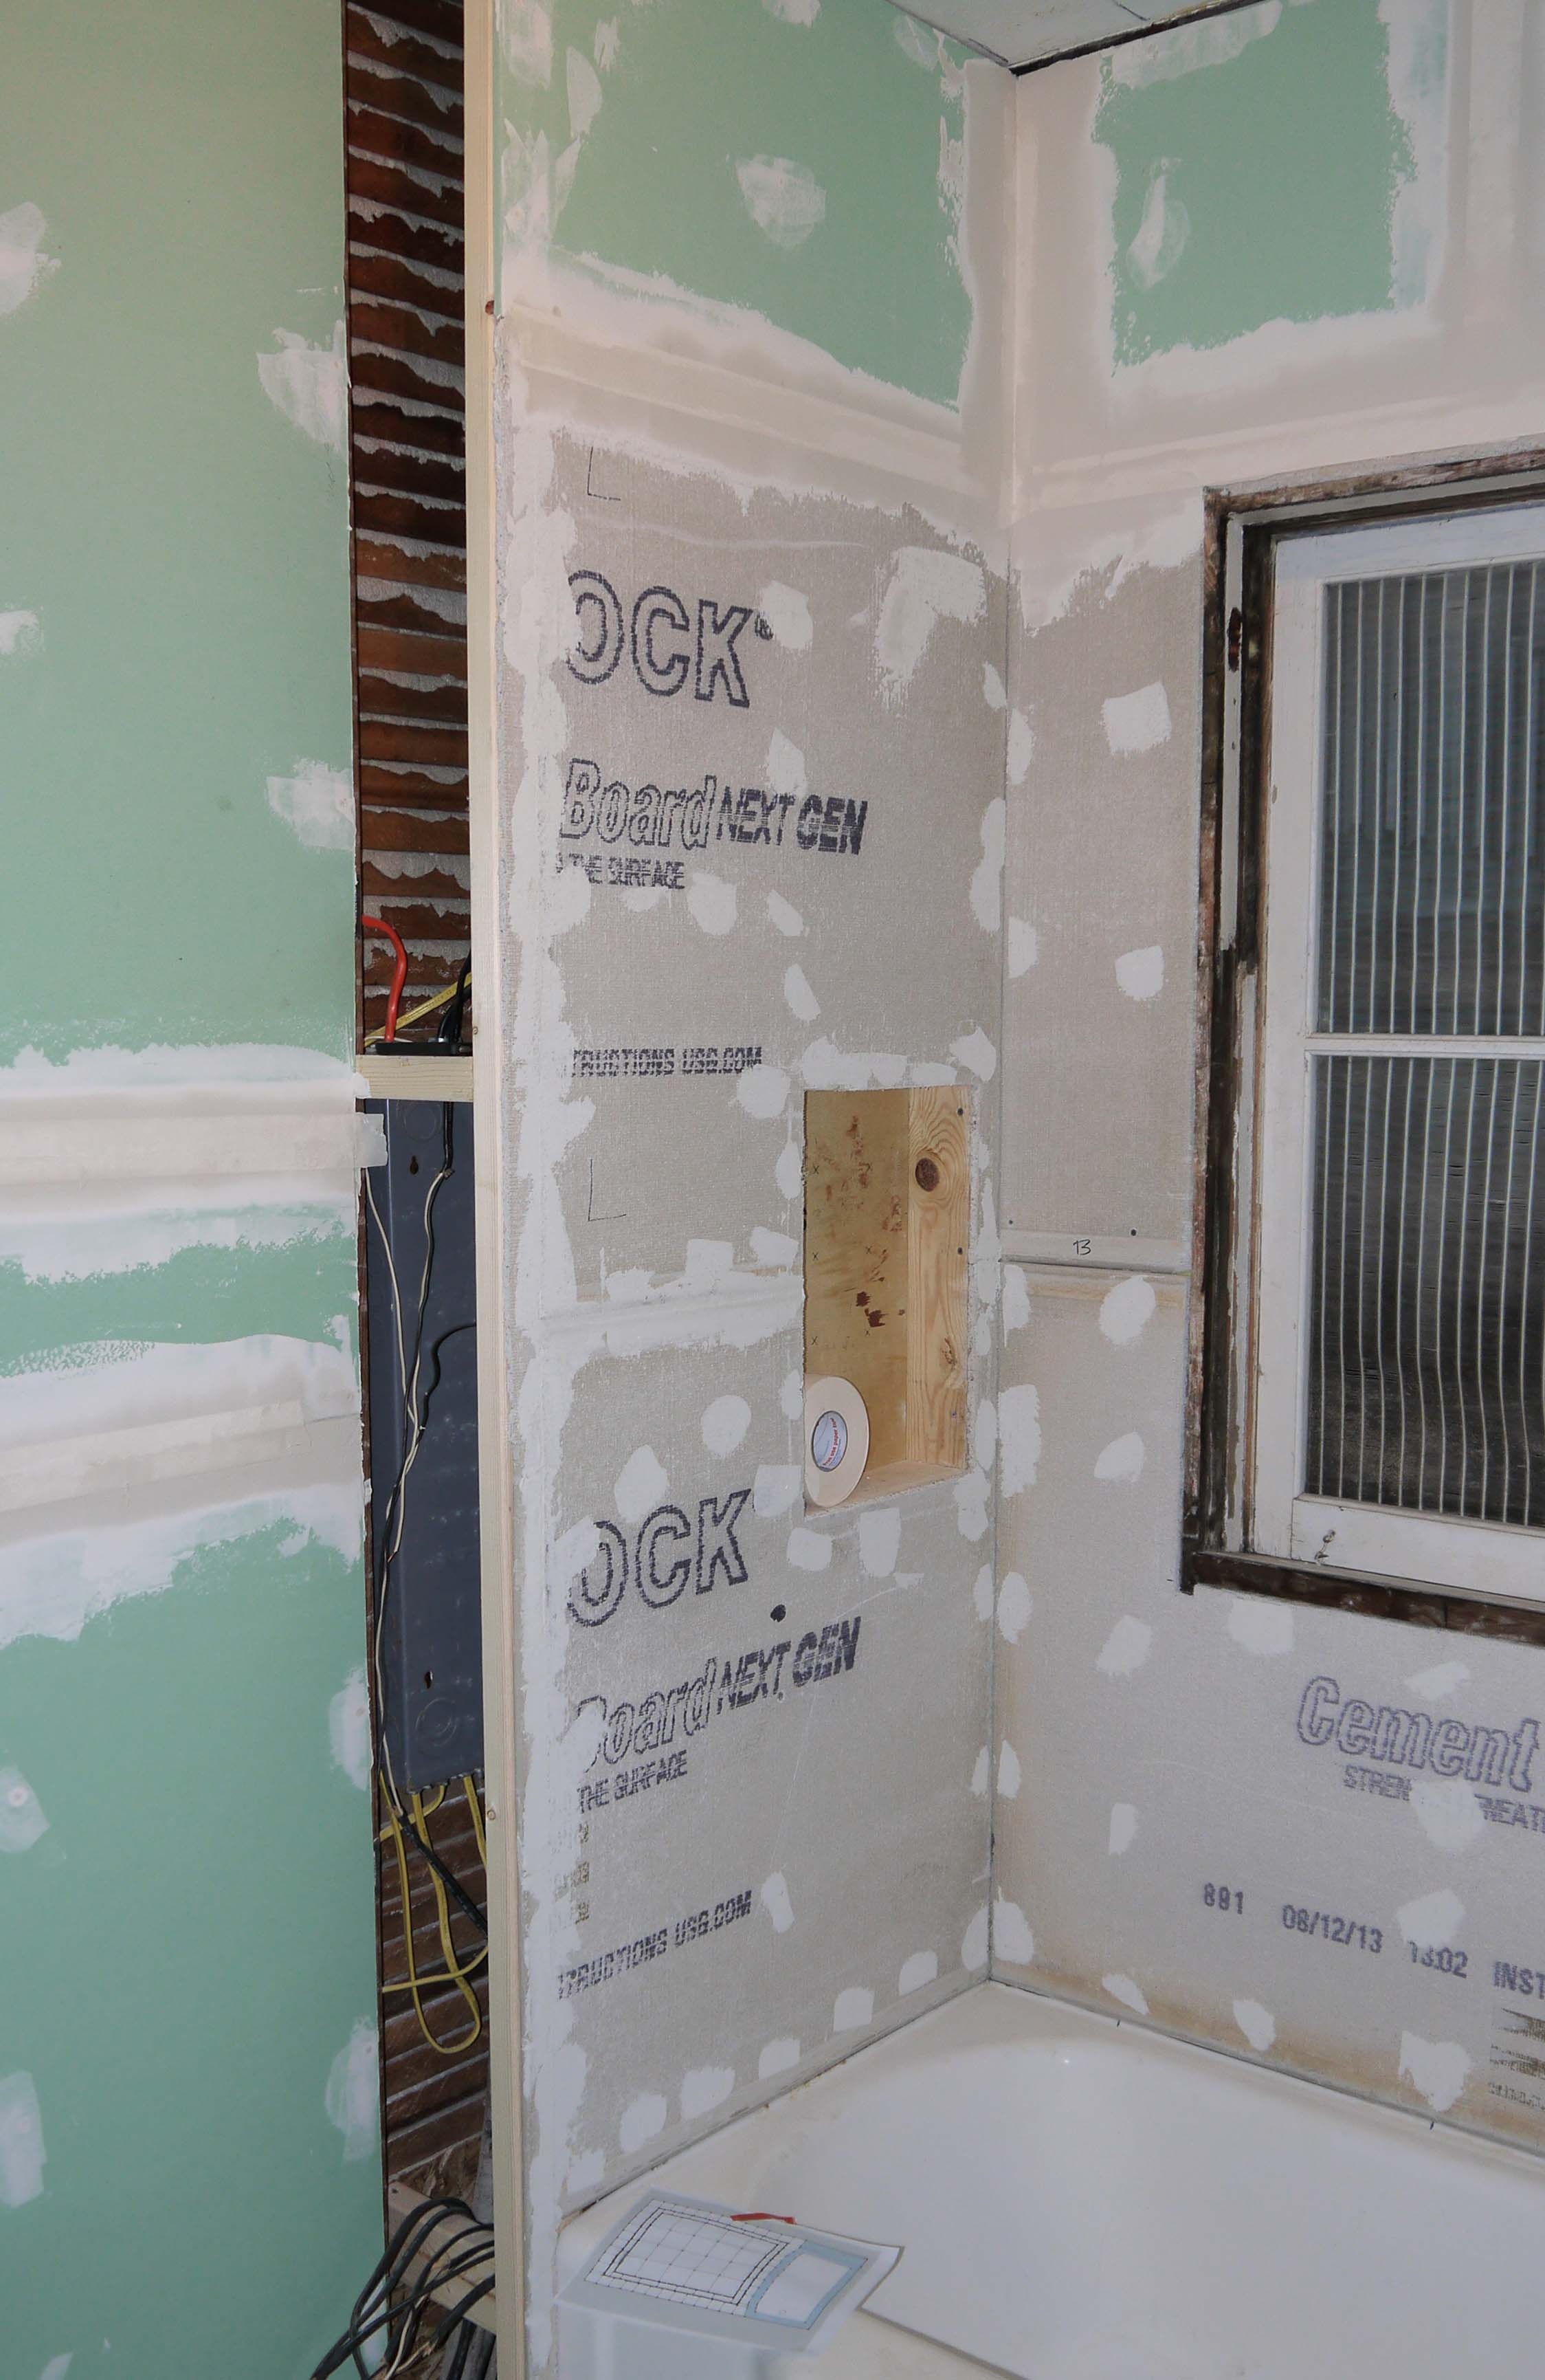 Drywall up and adam ries for Drywall or cement board for shower